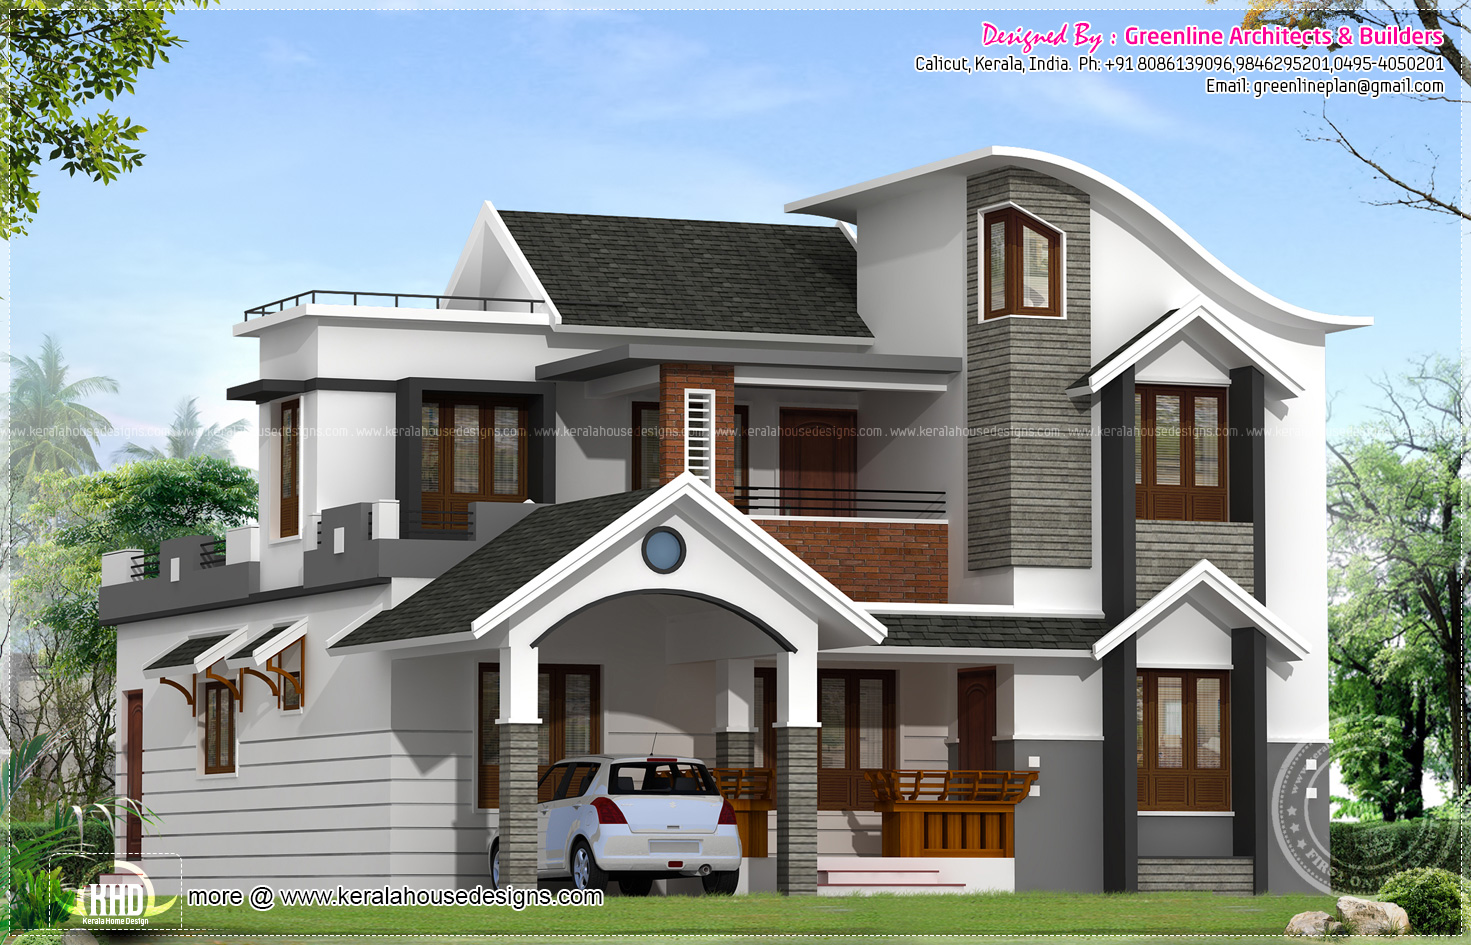 Wonderful Architecture Design Kerala Traditional House Plan With